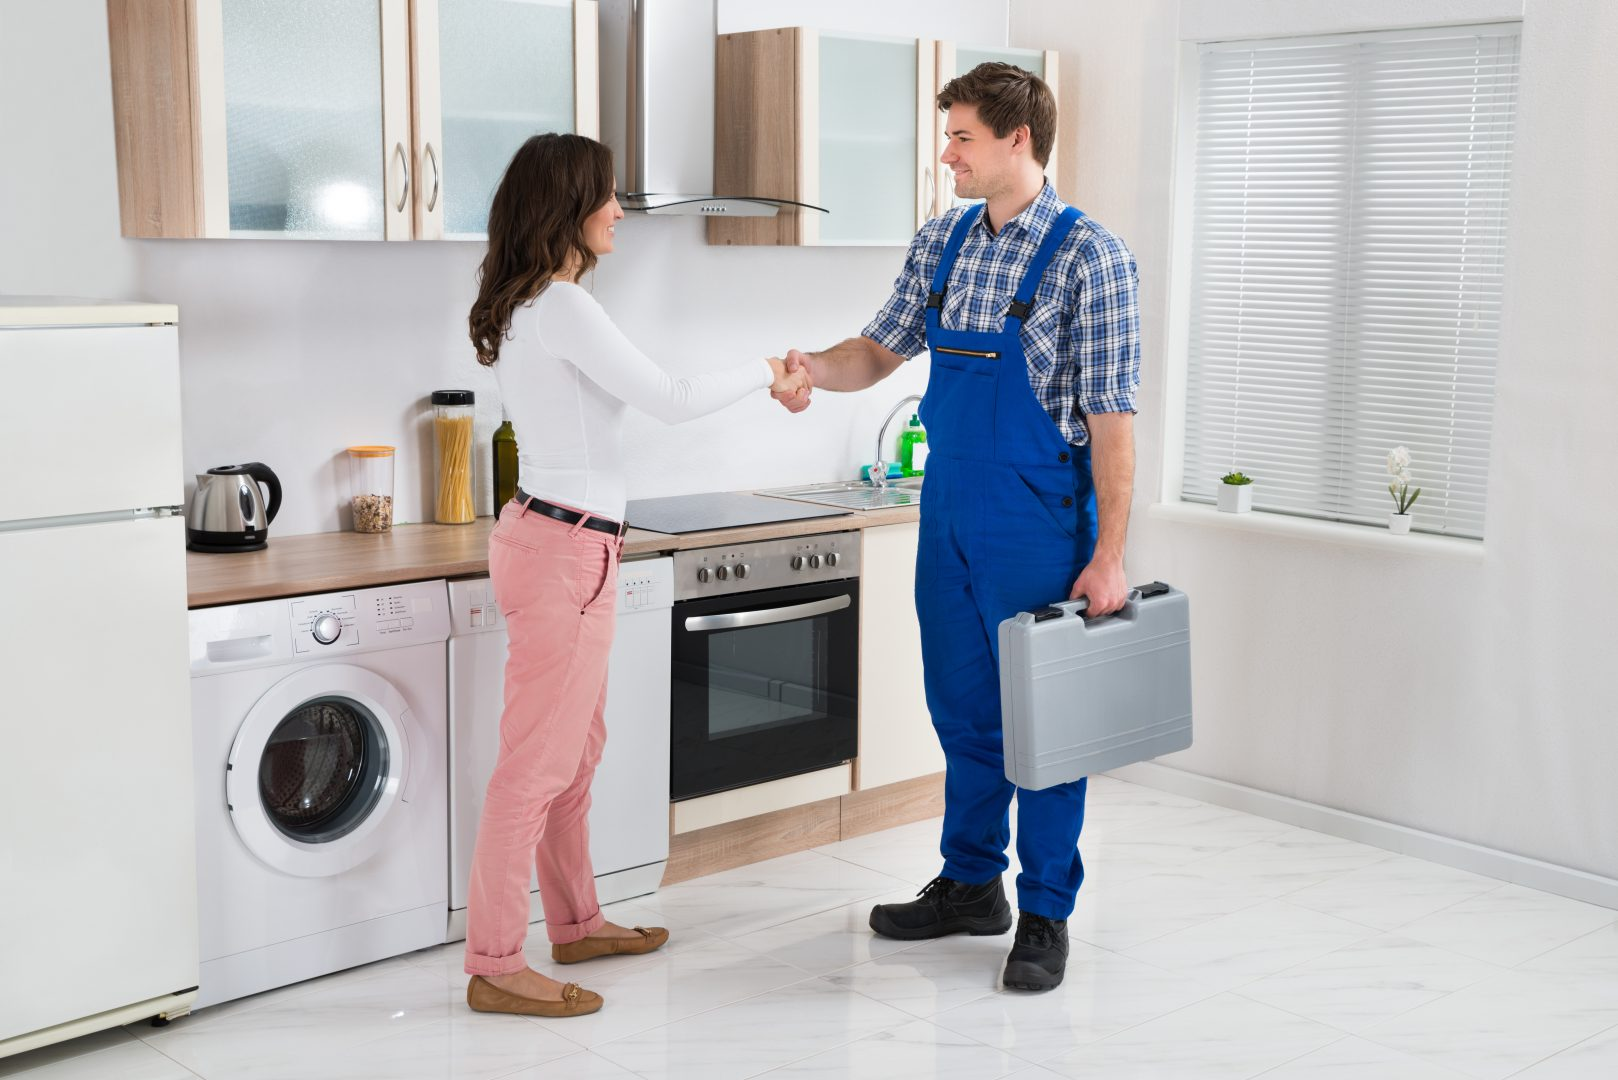 A worker shaking hands with a customer